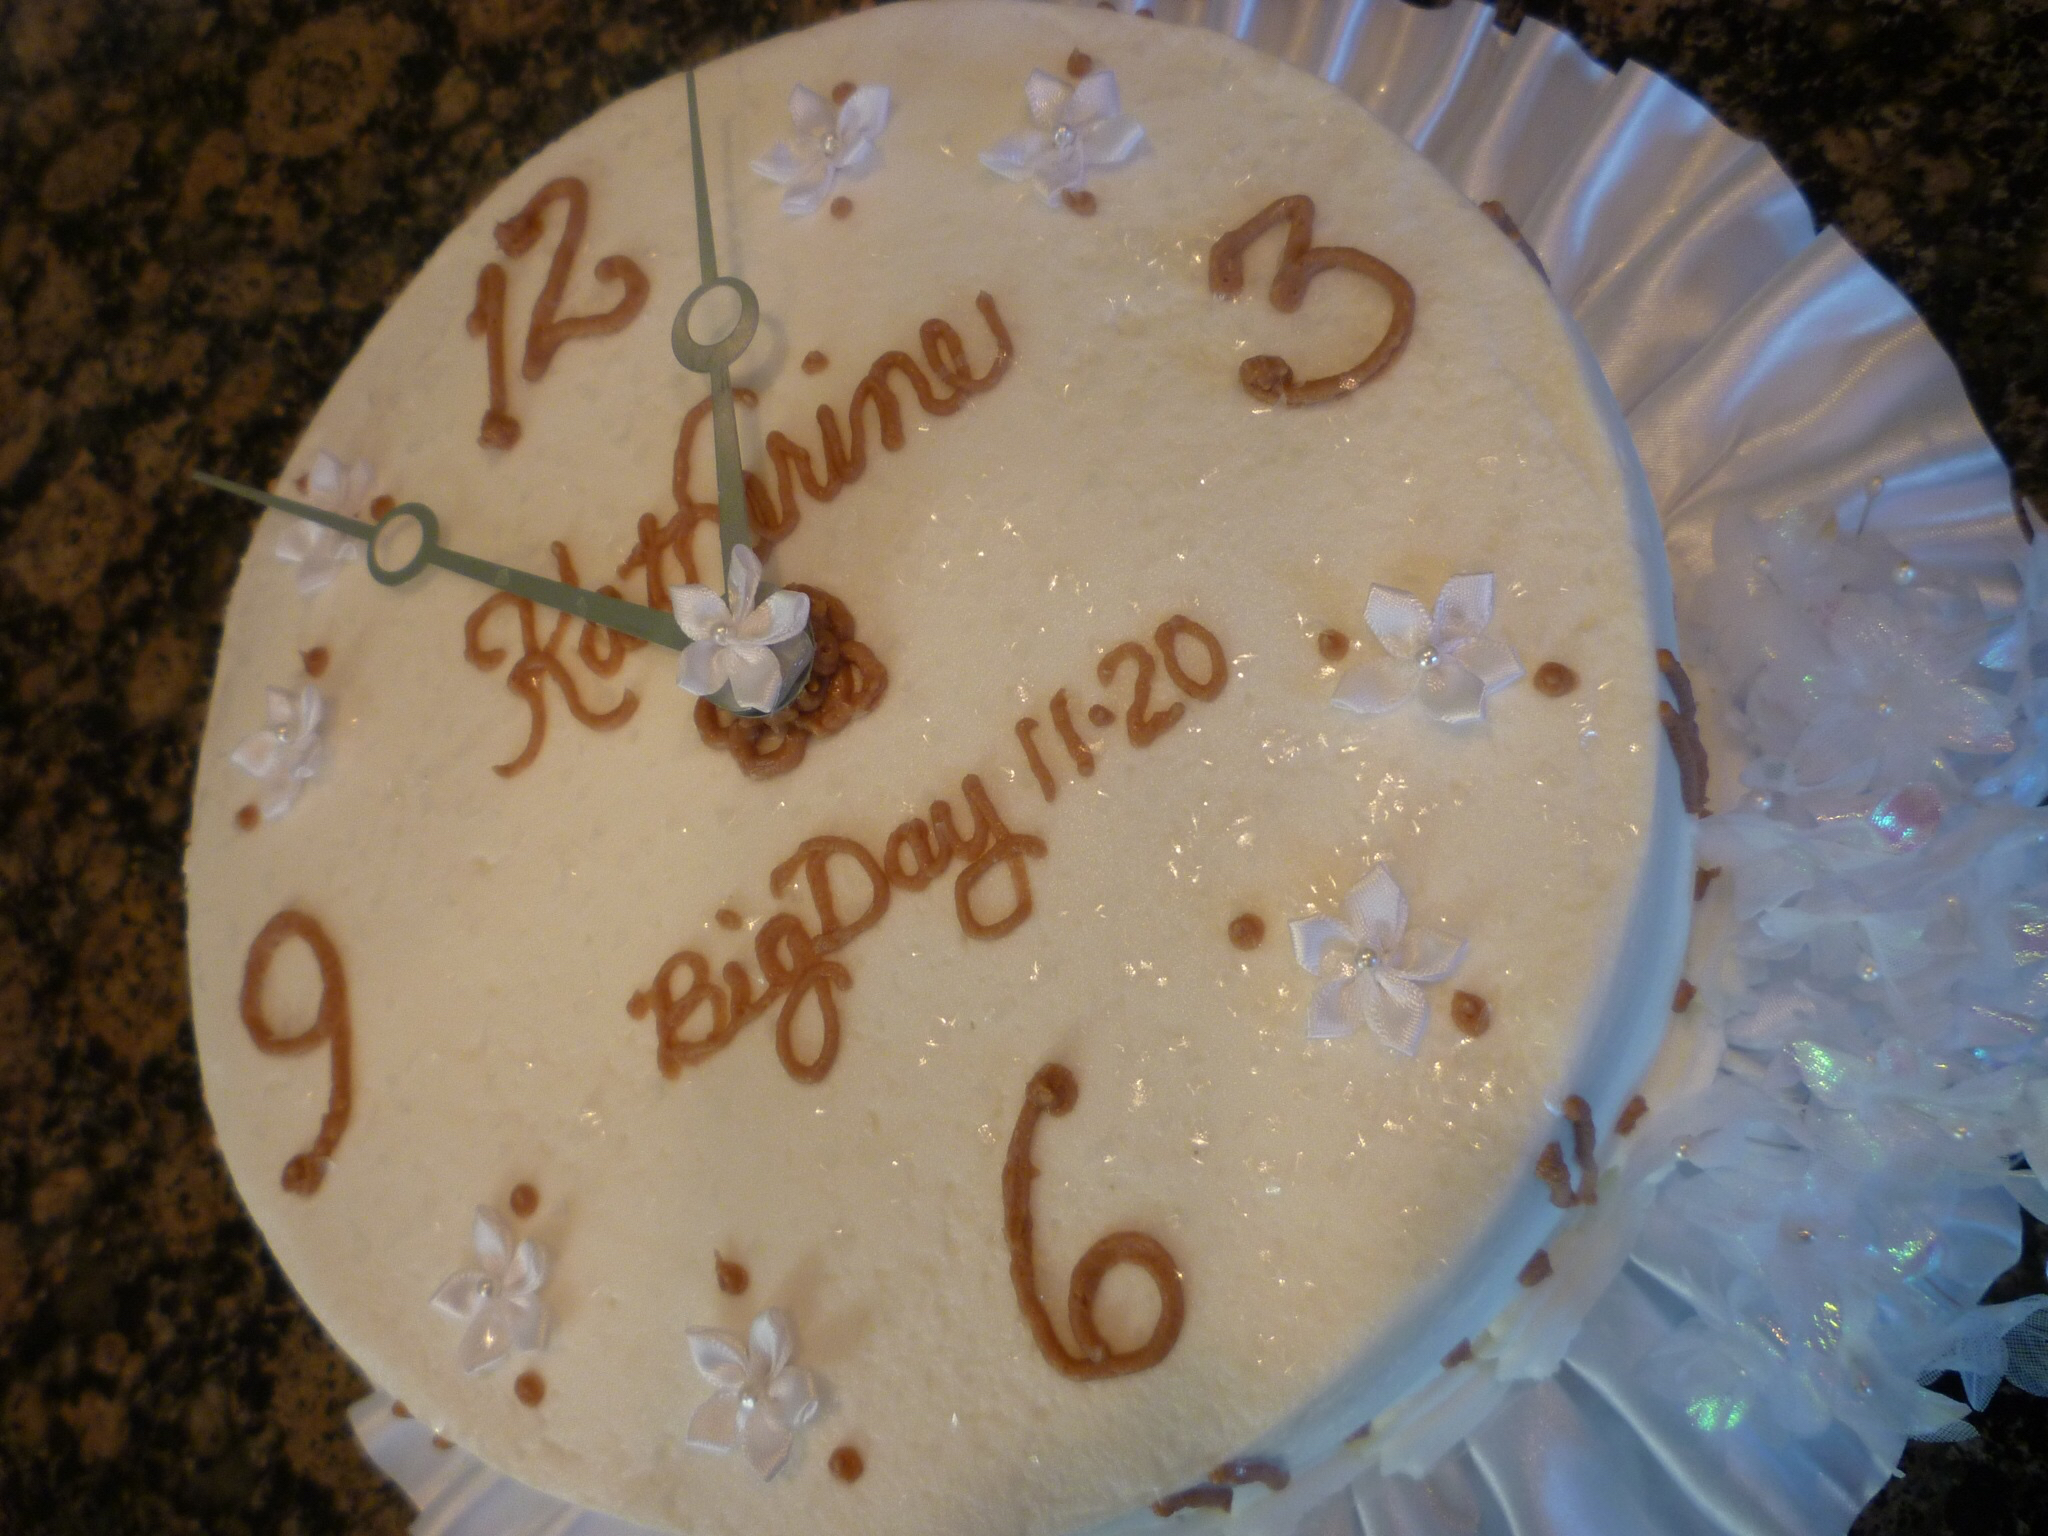 Clock Bridal shower cake